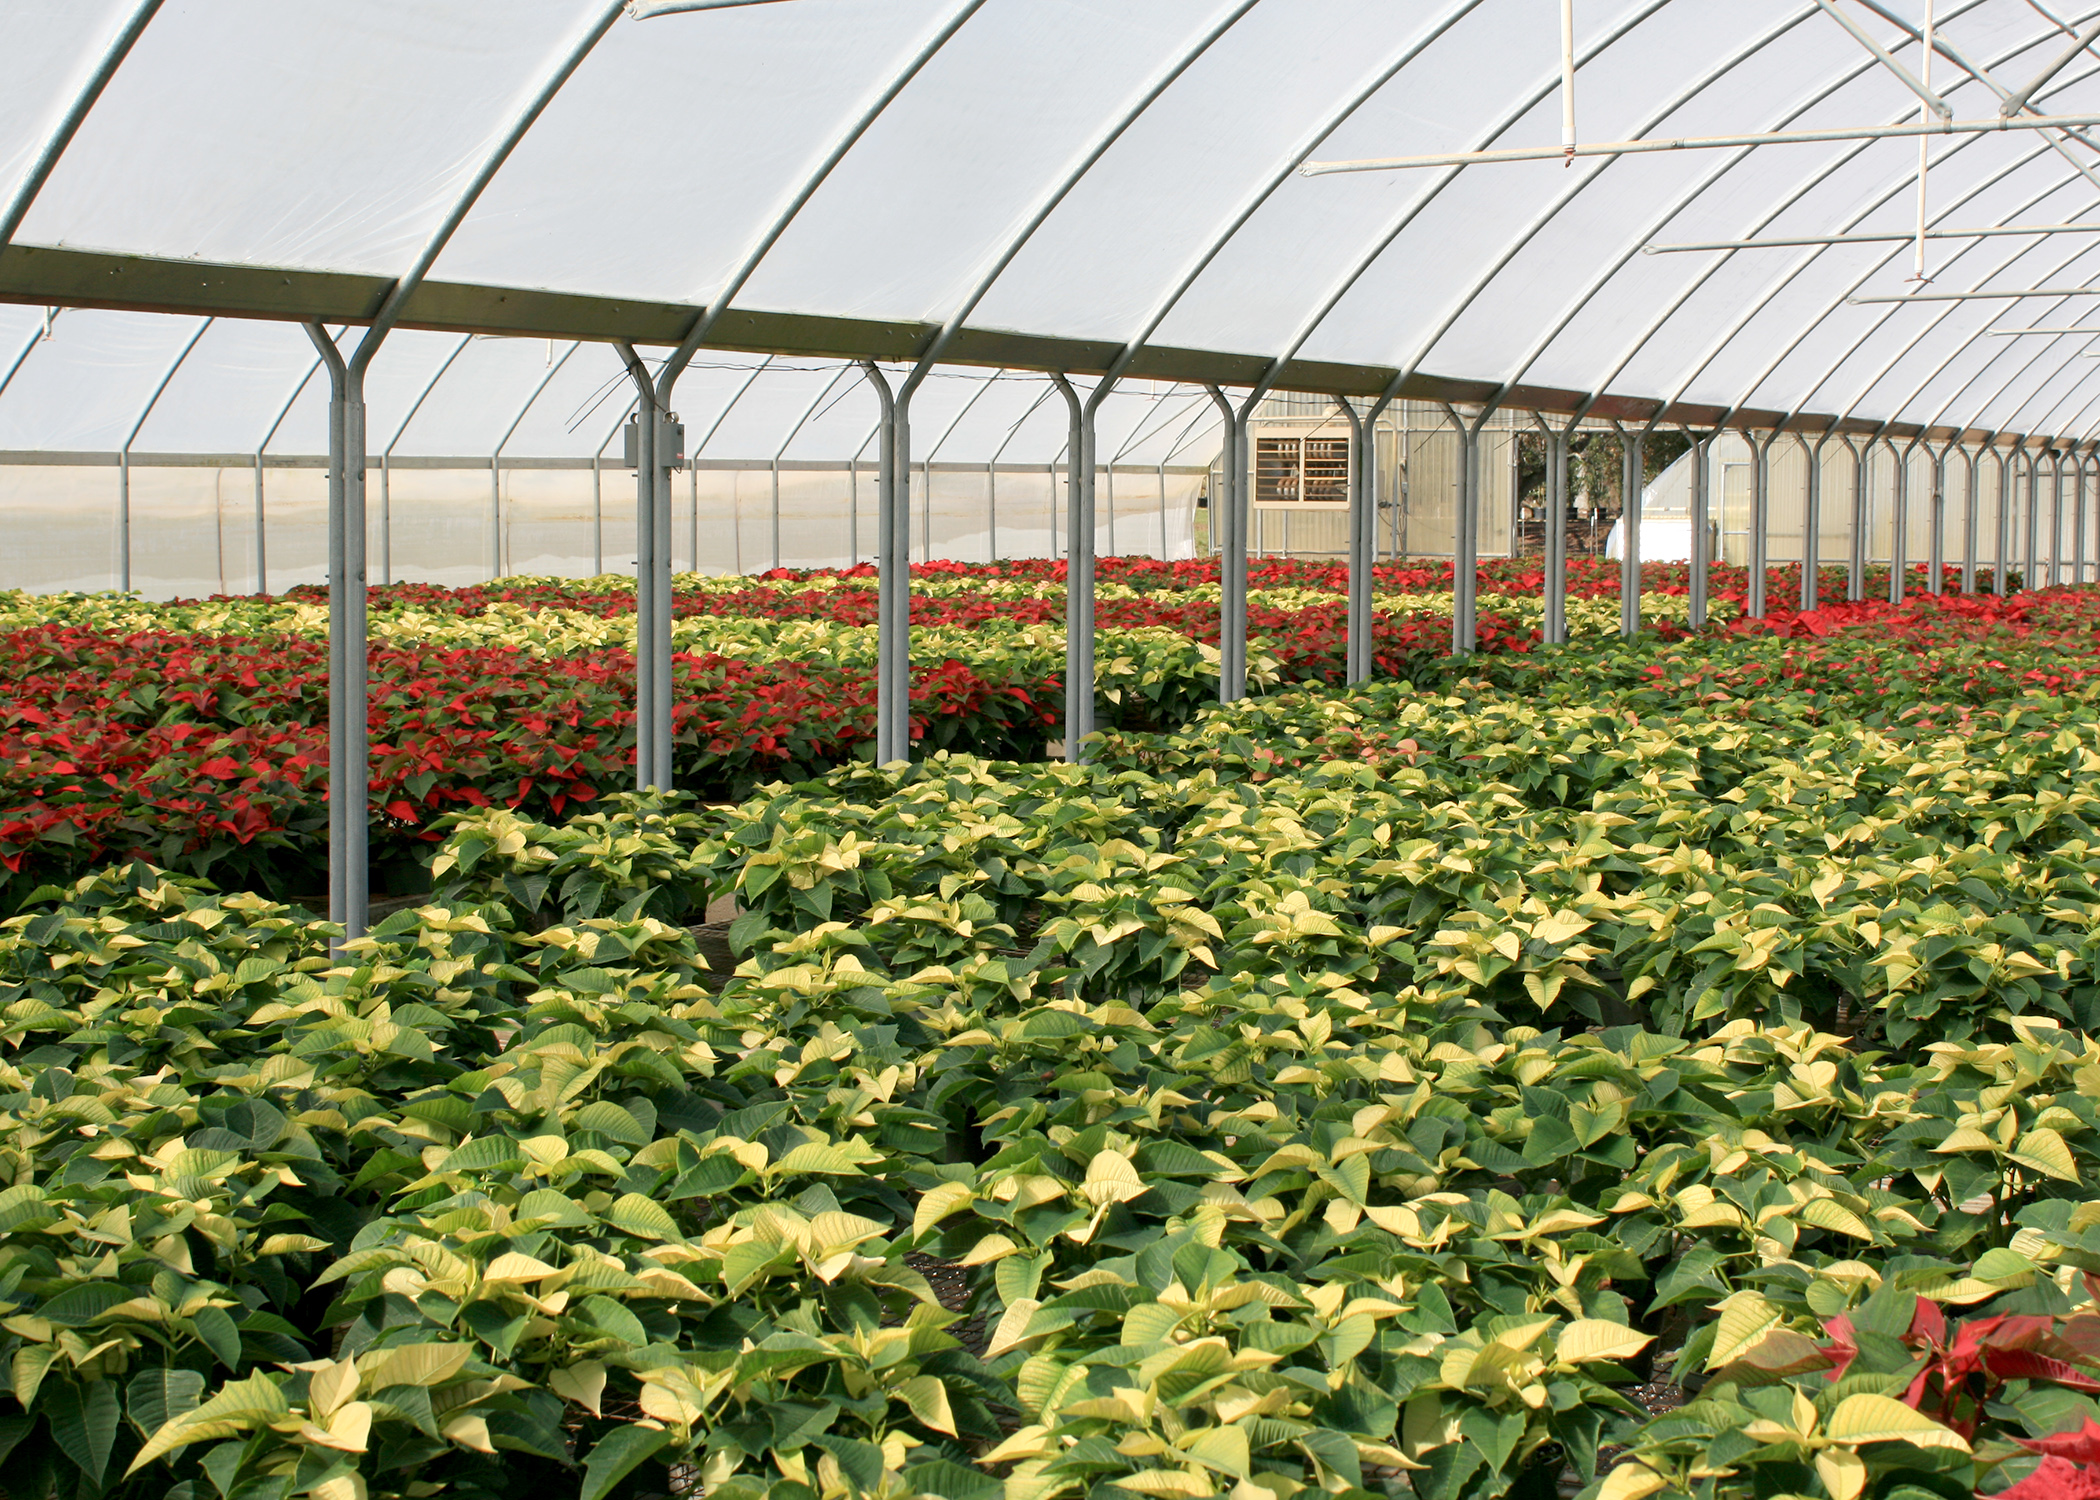 Poinsettias naturally change color in the short days of winter in their native Mexico, but greenhouses use shade cloth to block light and trick the plants into turning color in time for Christmas. (Photo by MSU Extension/Gary Bachman)